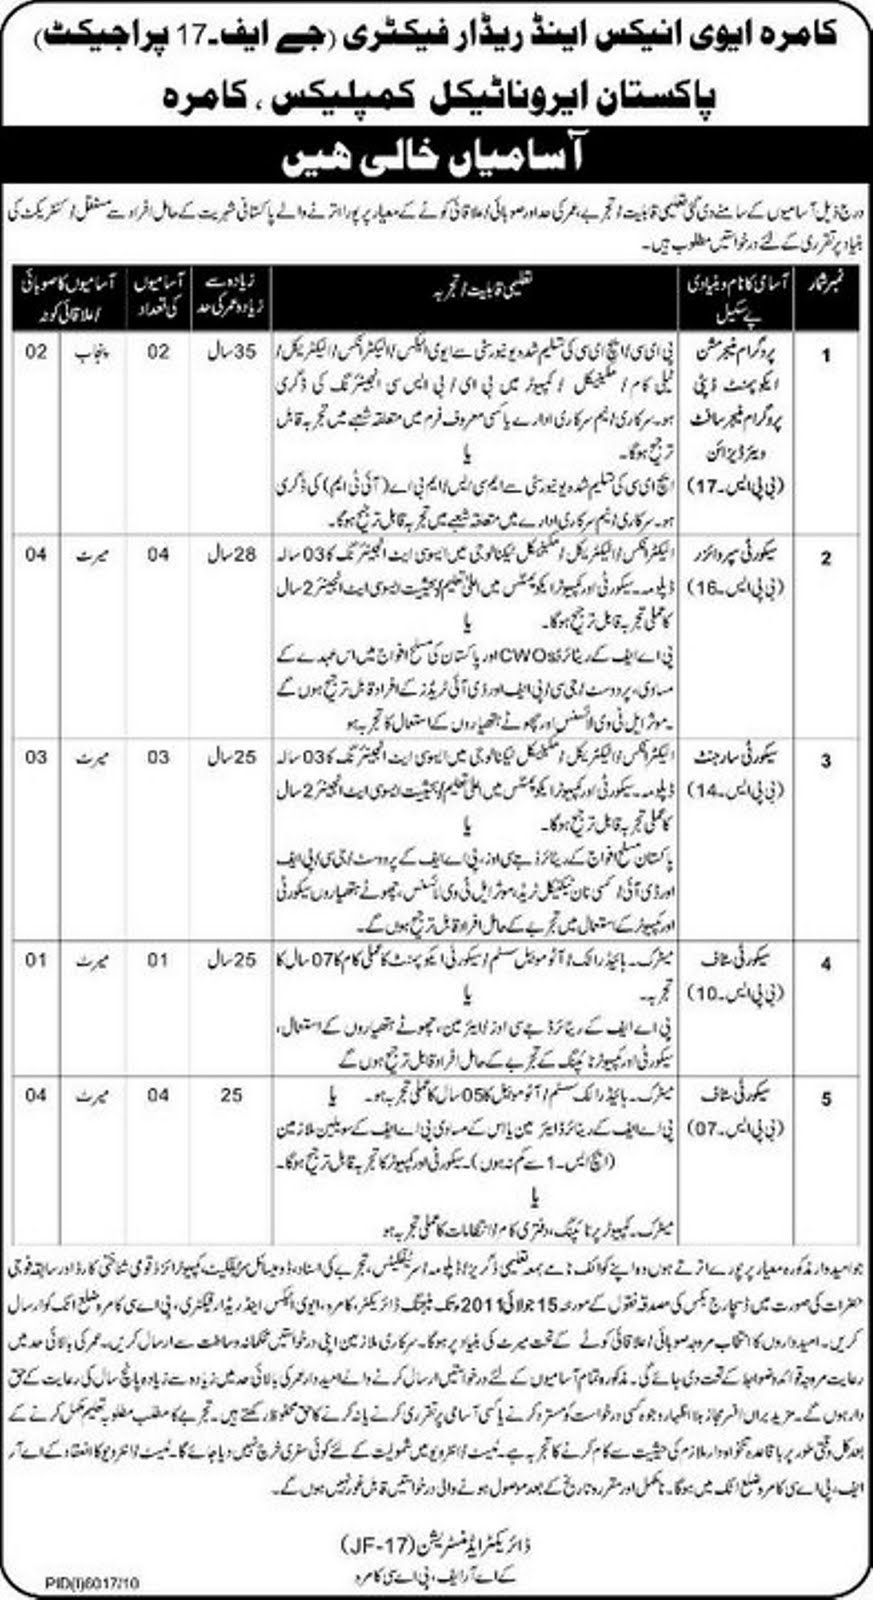 17 Jobs For 17 Year Olds That Will Pay For College: Jobs In Kamra Avionics & Radar Factory (JF-17 Thunder